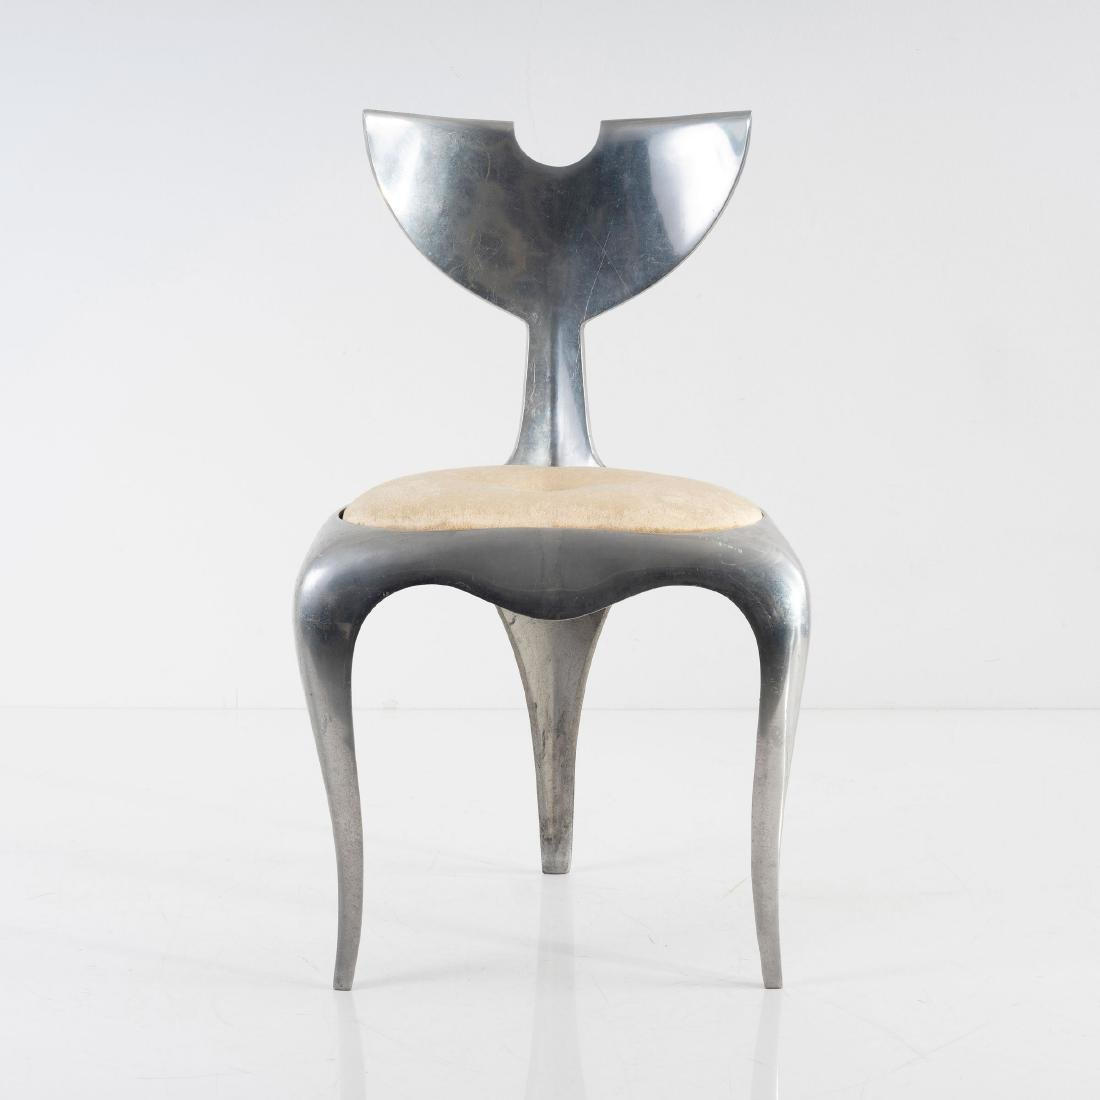 'Whaletail' chair, 1989 - 4